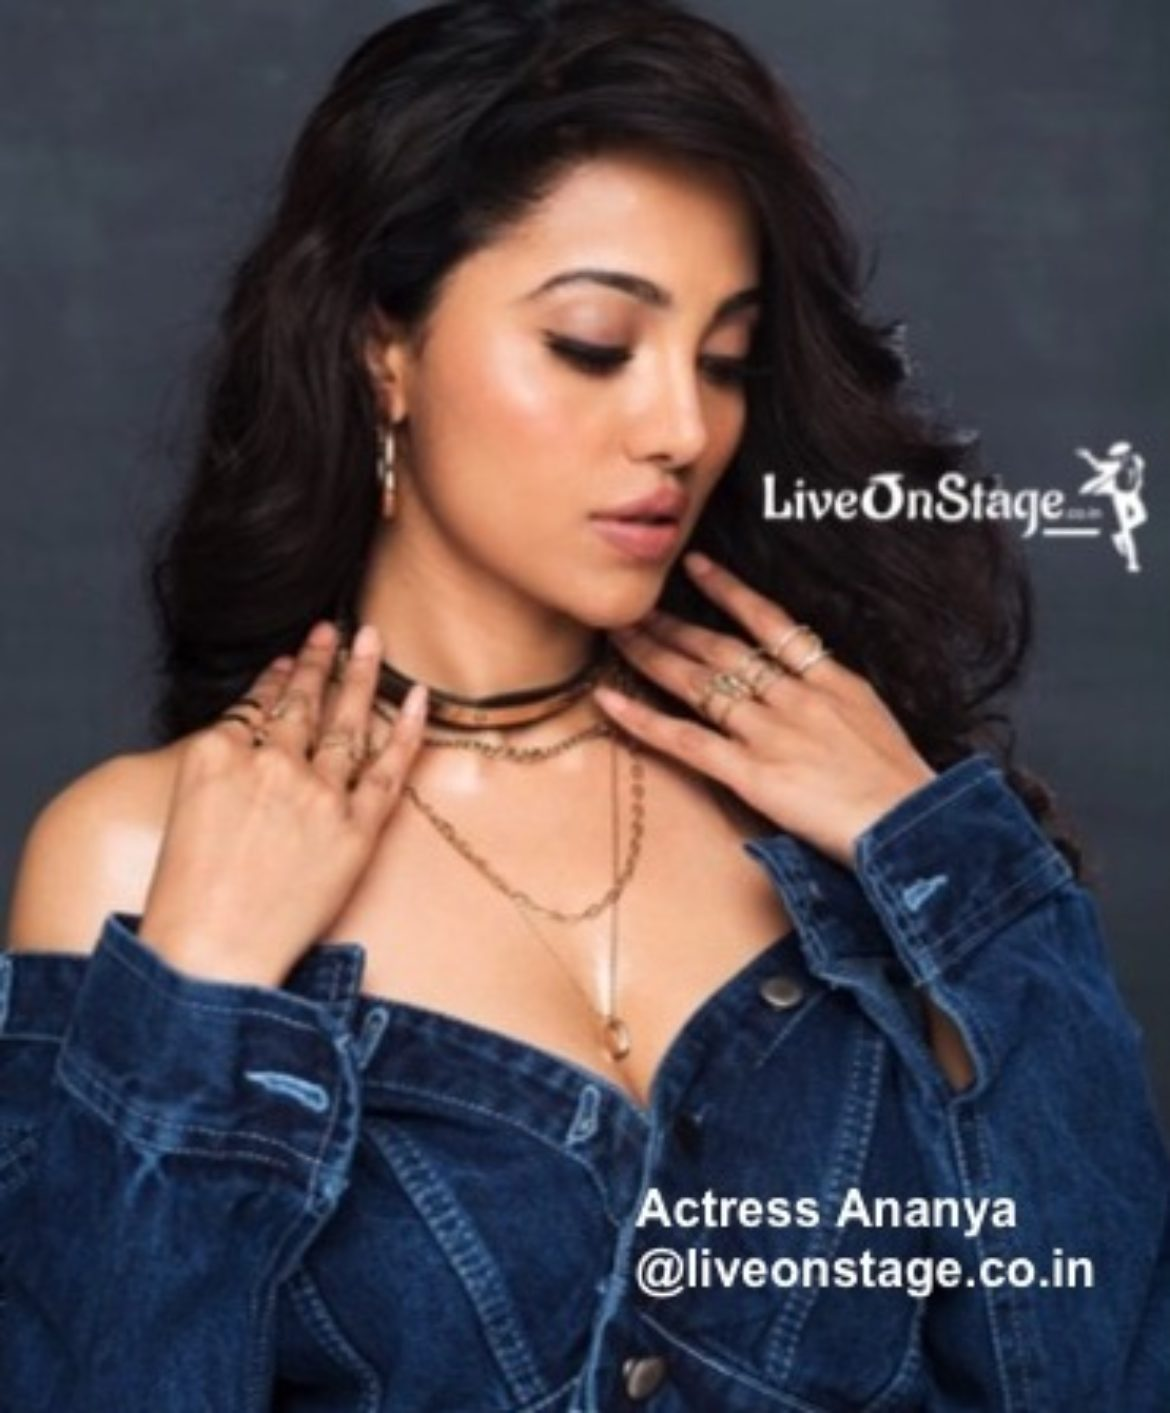 Bollywood, Bollywood Artists, Bollywood Performer, Bollywood Actress, Model, Fitness Model, Celebrity Host, Celebrity Performer, Celebrity Compere, Television, Stage Performer, Live On Stage, Live On Stage Entertainment